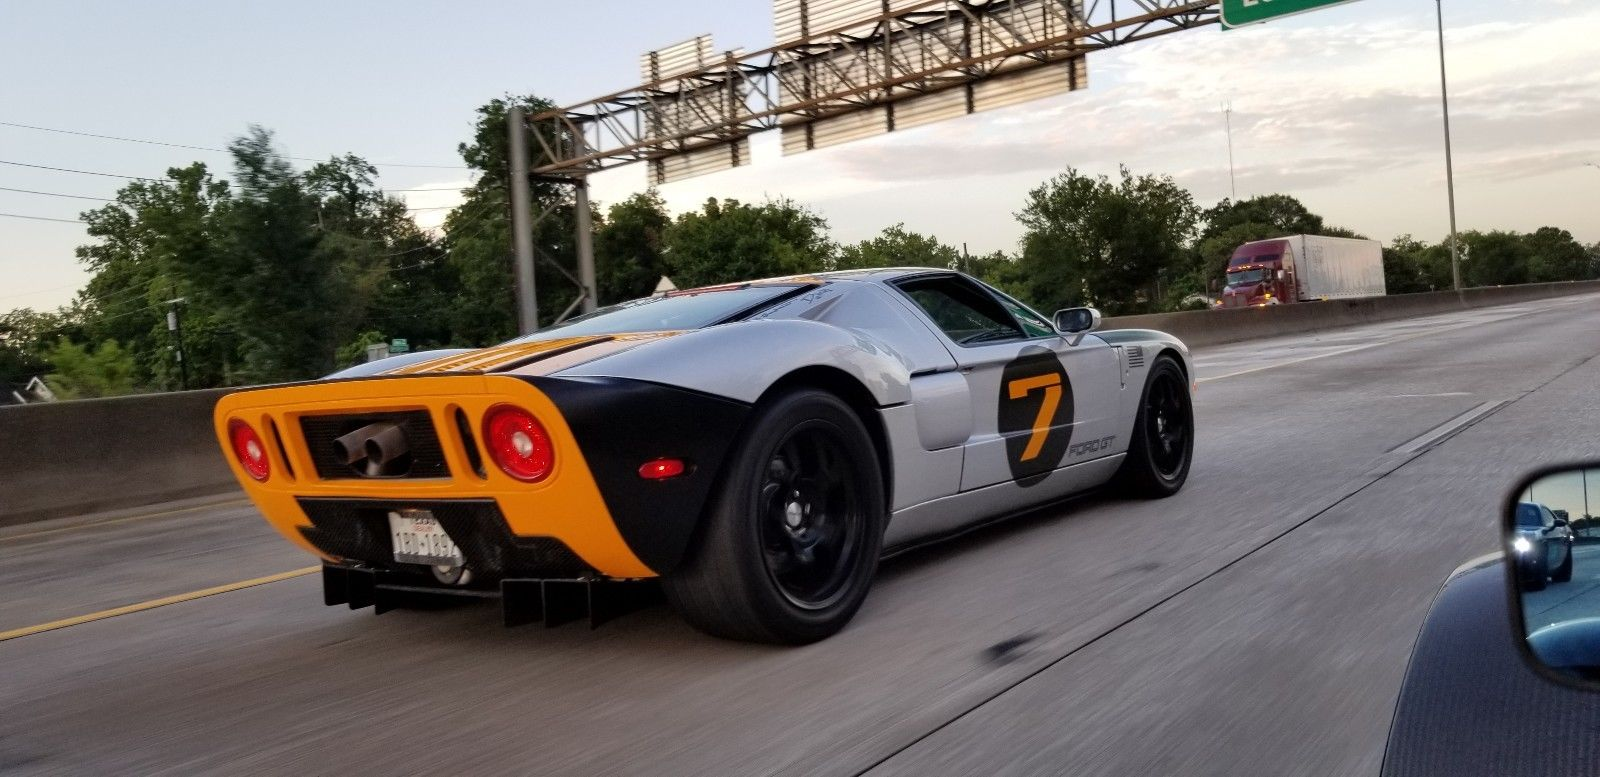 solar 7 ford gt on road